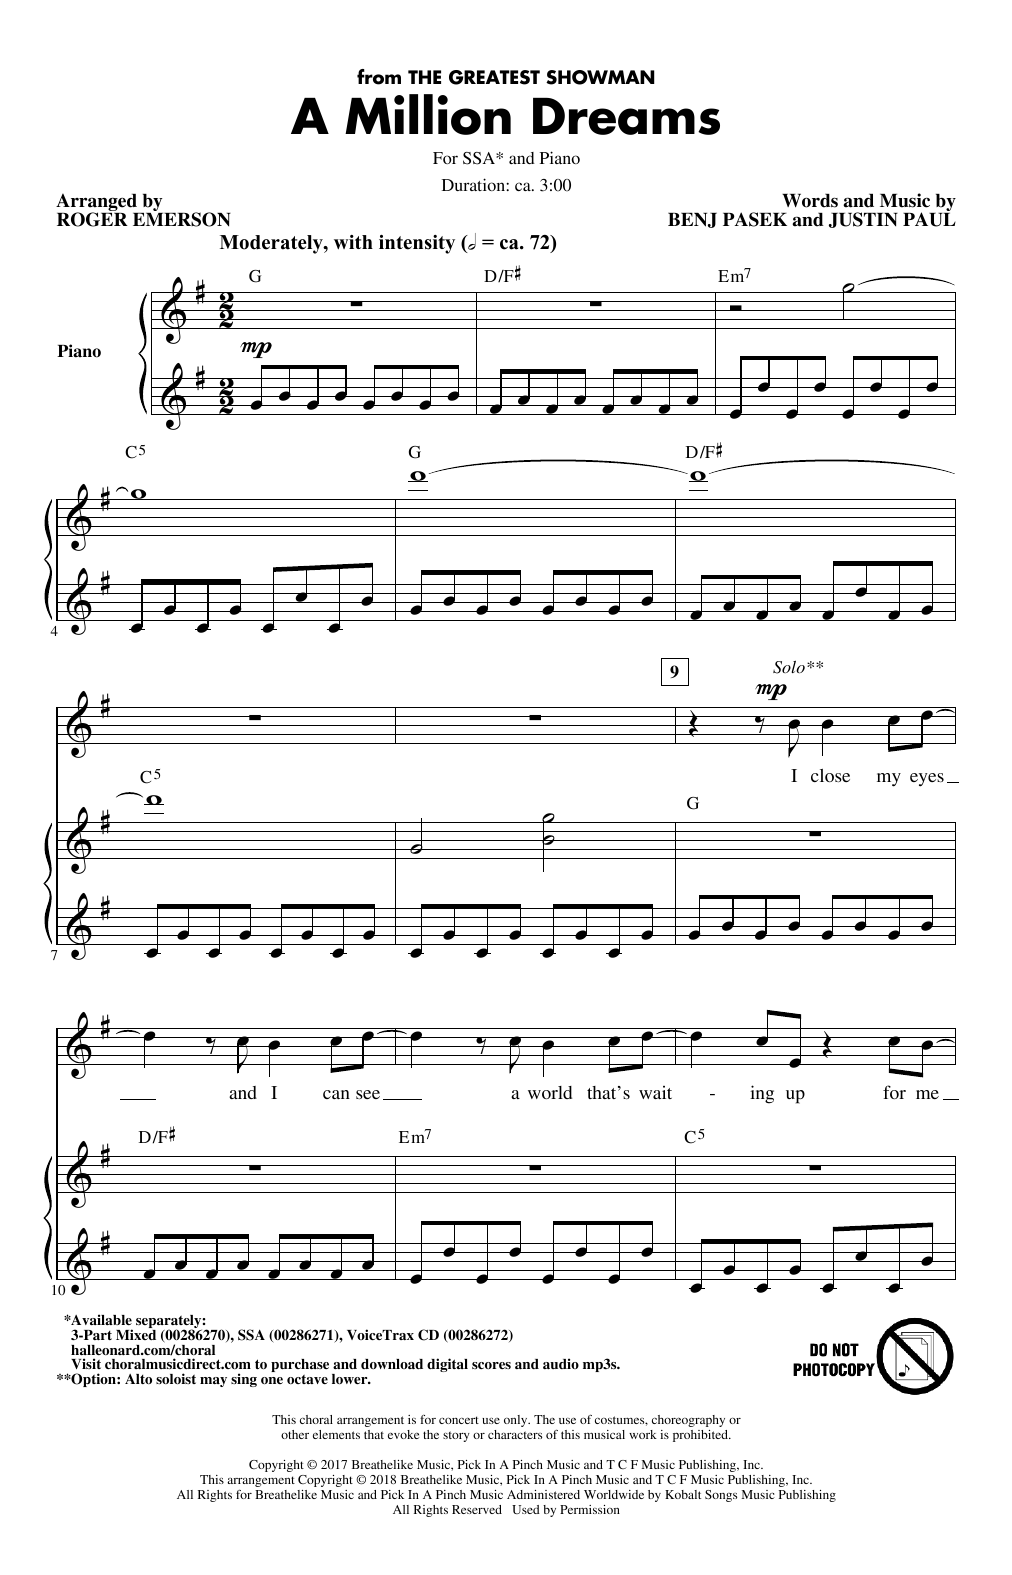 Pasek & Paul A Million Dreams (from The Greatest Showman) (arr. Roger Emerson) sheet music notes and chords